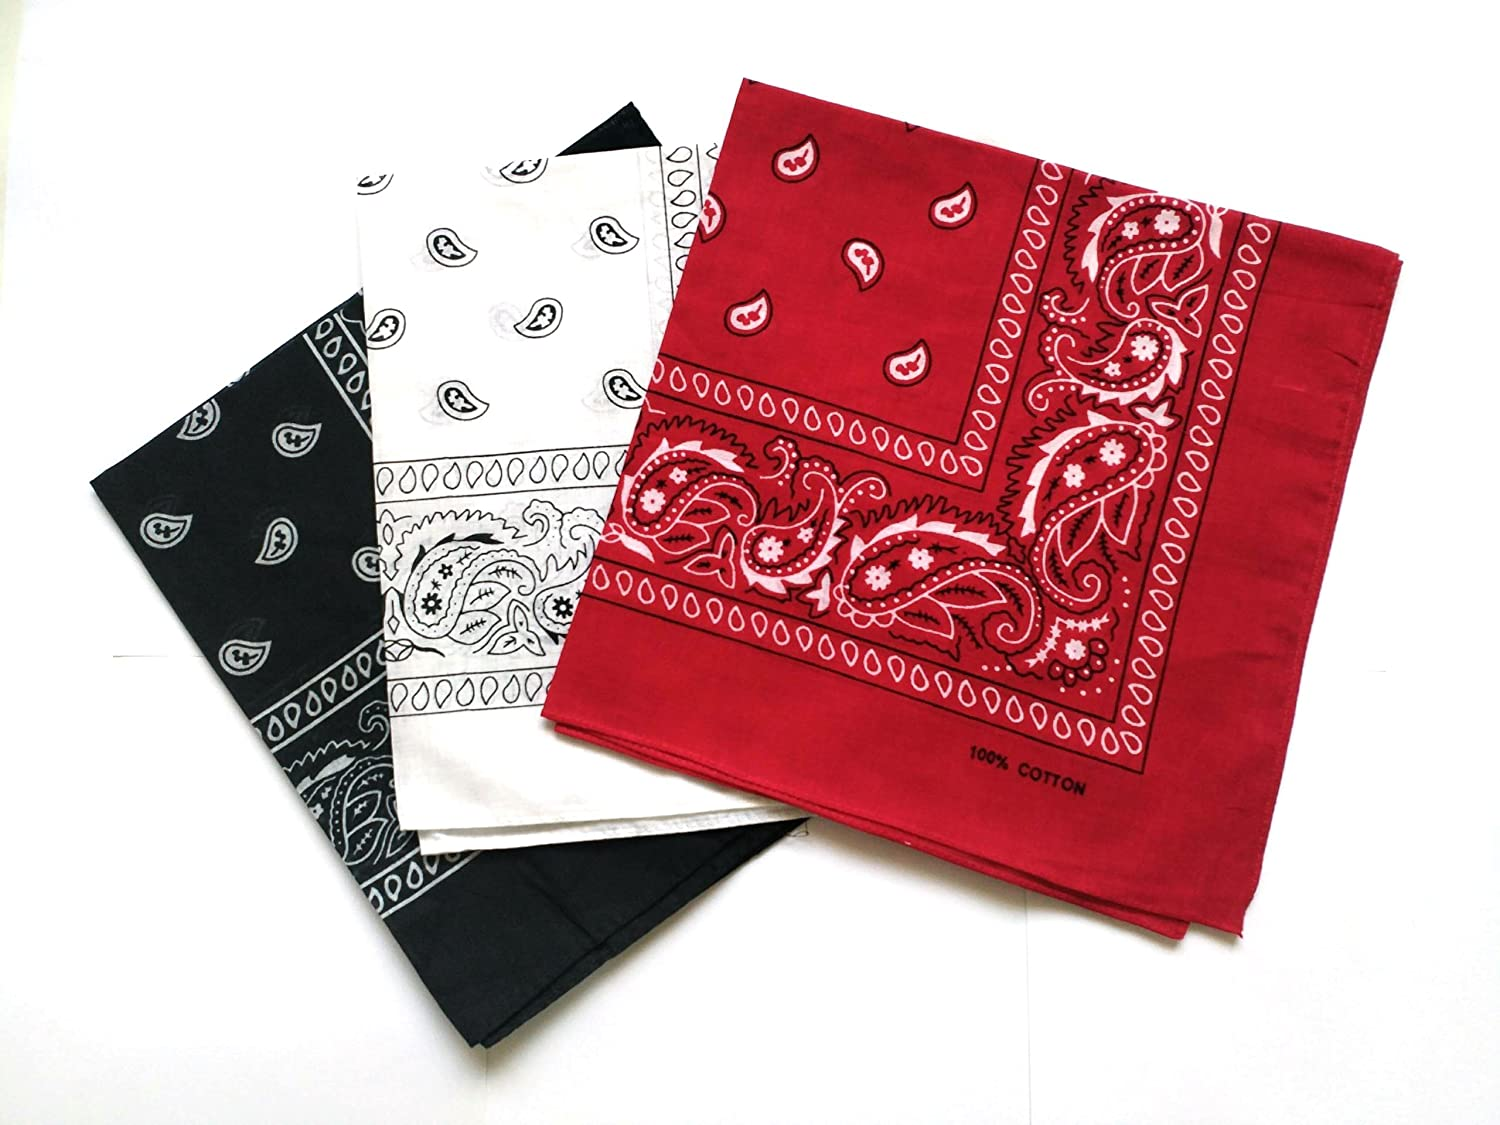 QBSM 6 Pack Cotton Paisley Pattern Bandanas Square Scarf Hair Head Neck Headwear Sold by ChicSelect ban01